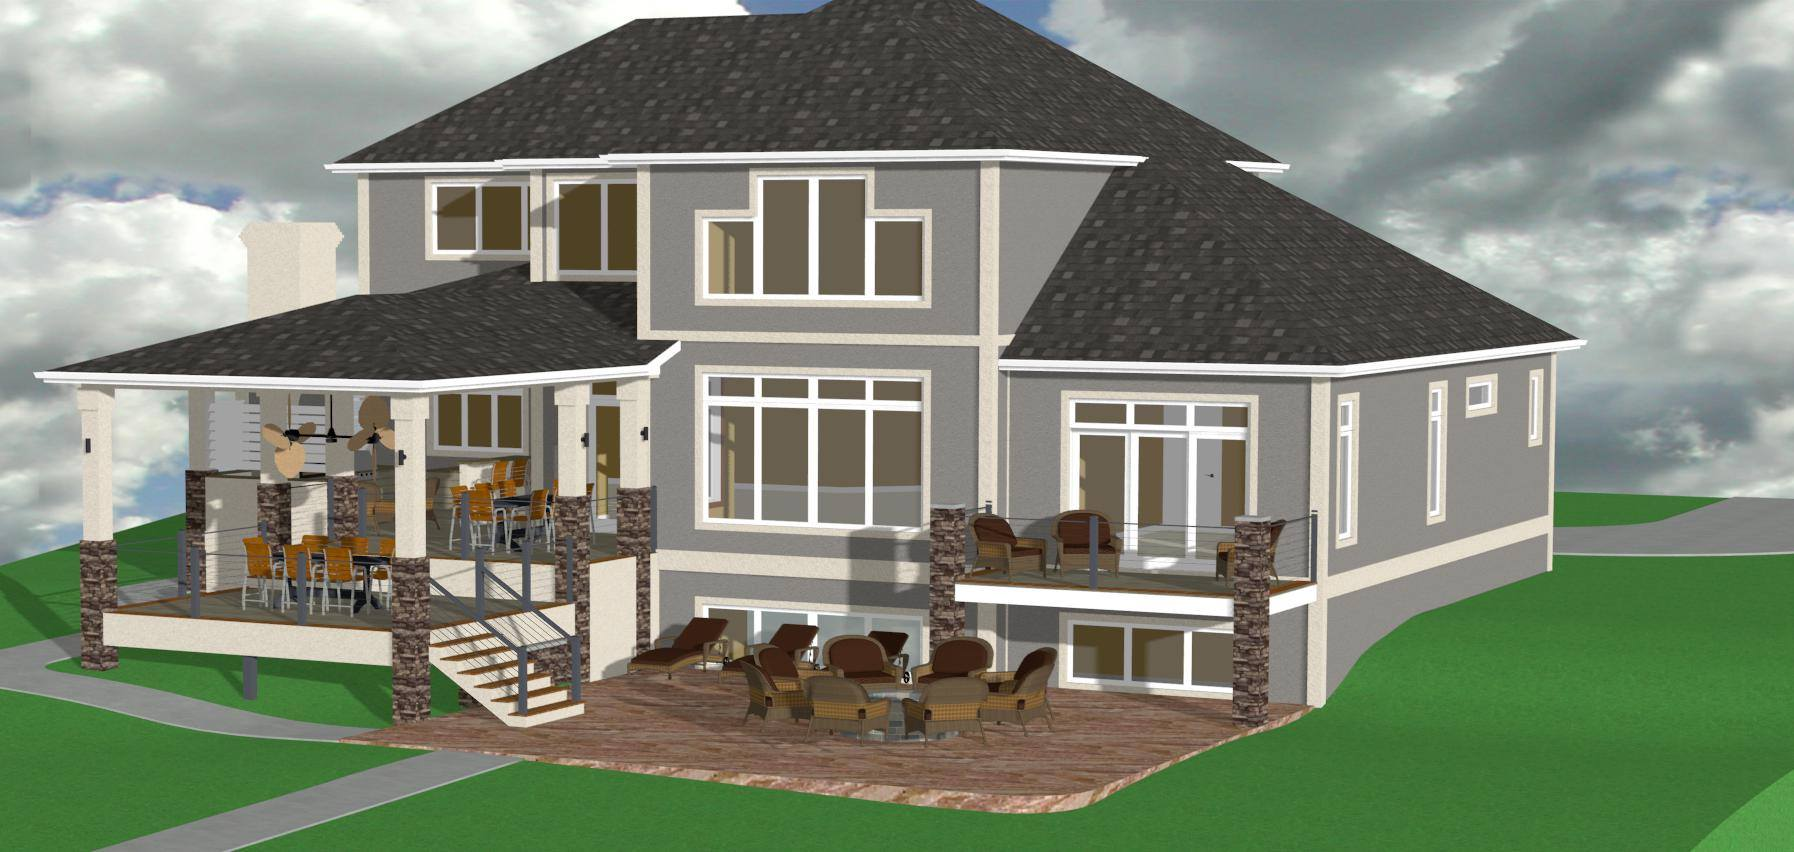 3-D Rendering of Remodel